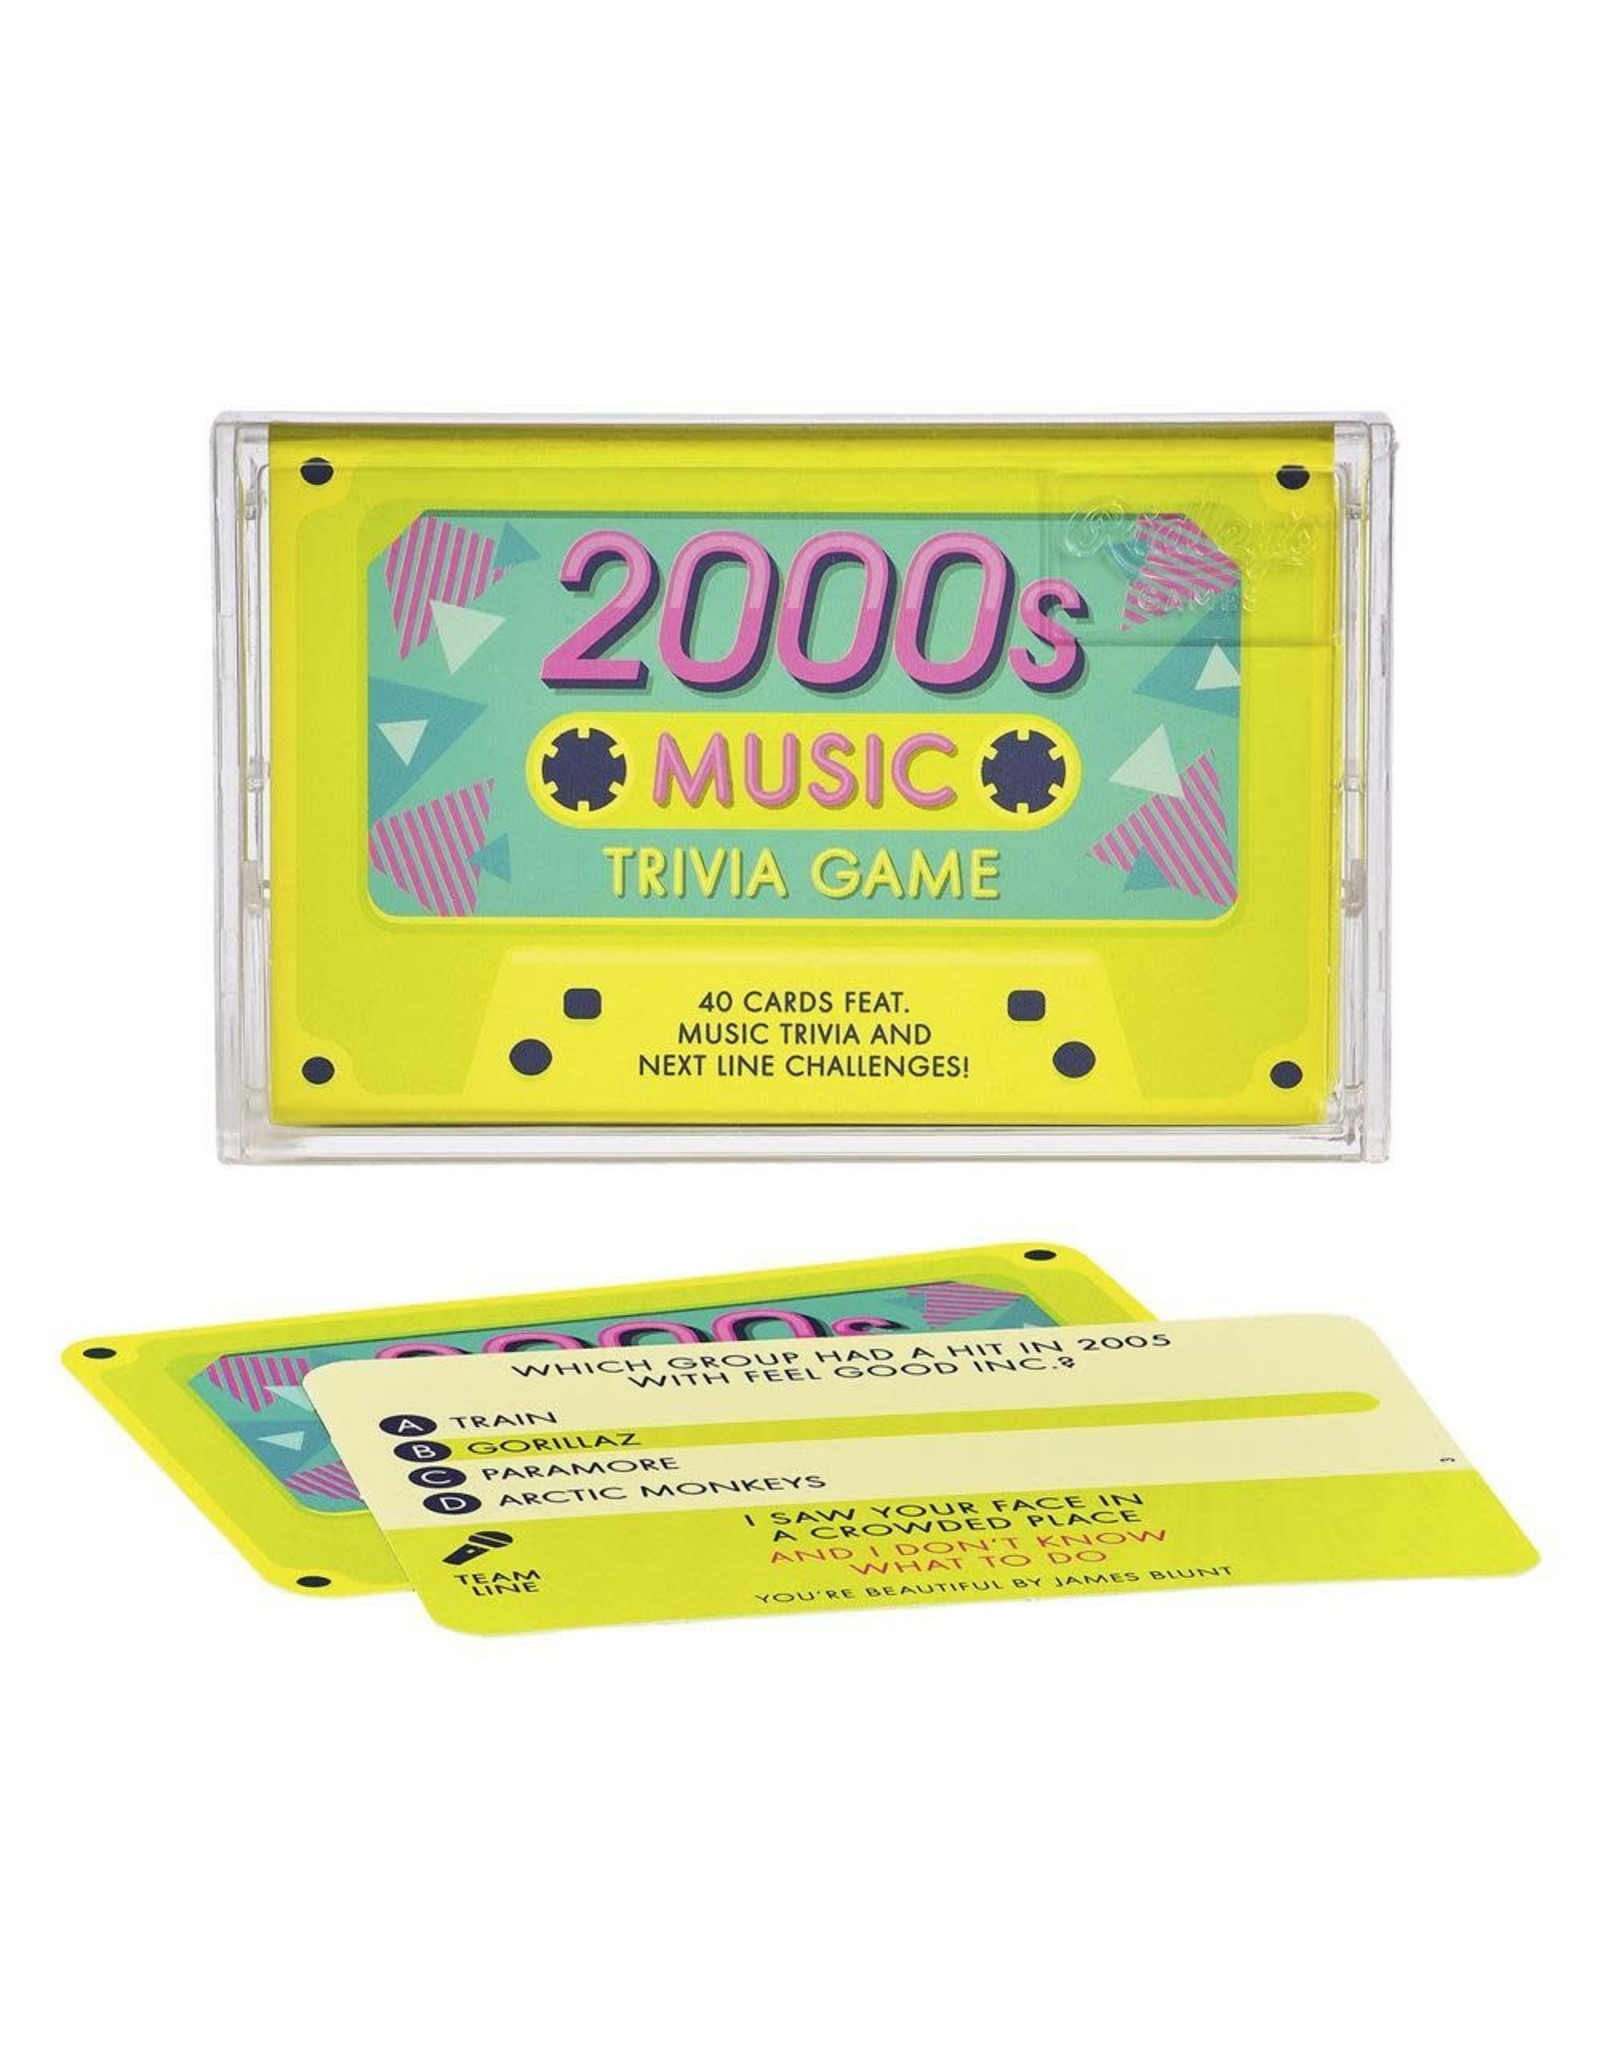 Ridley's 2000s Music Trivia Game